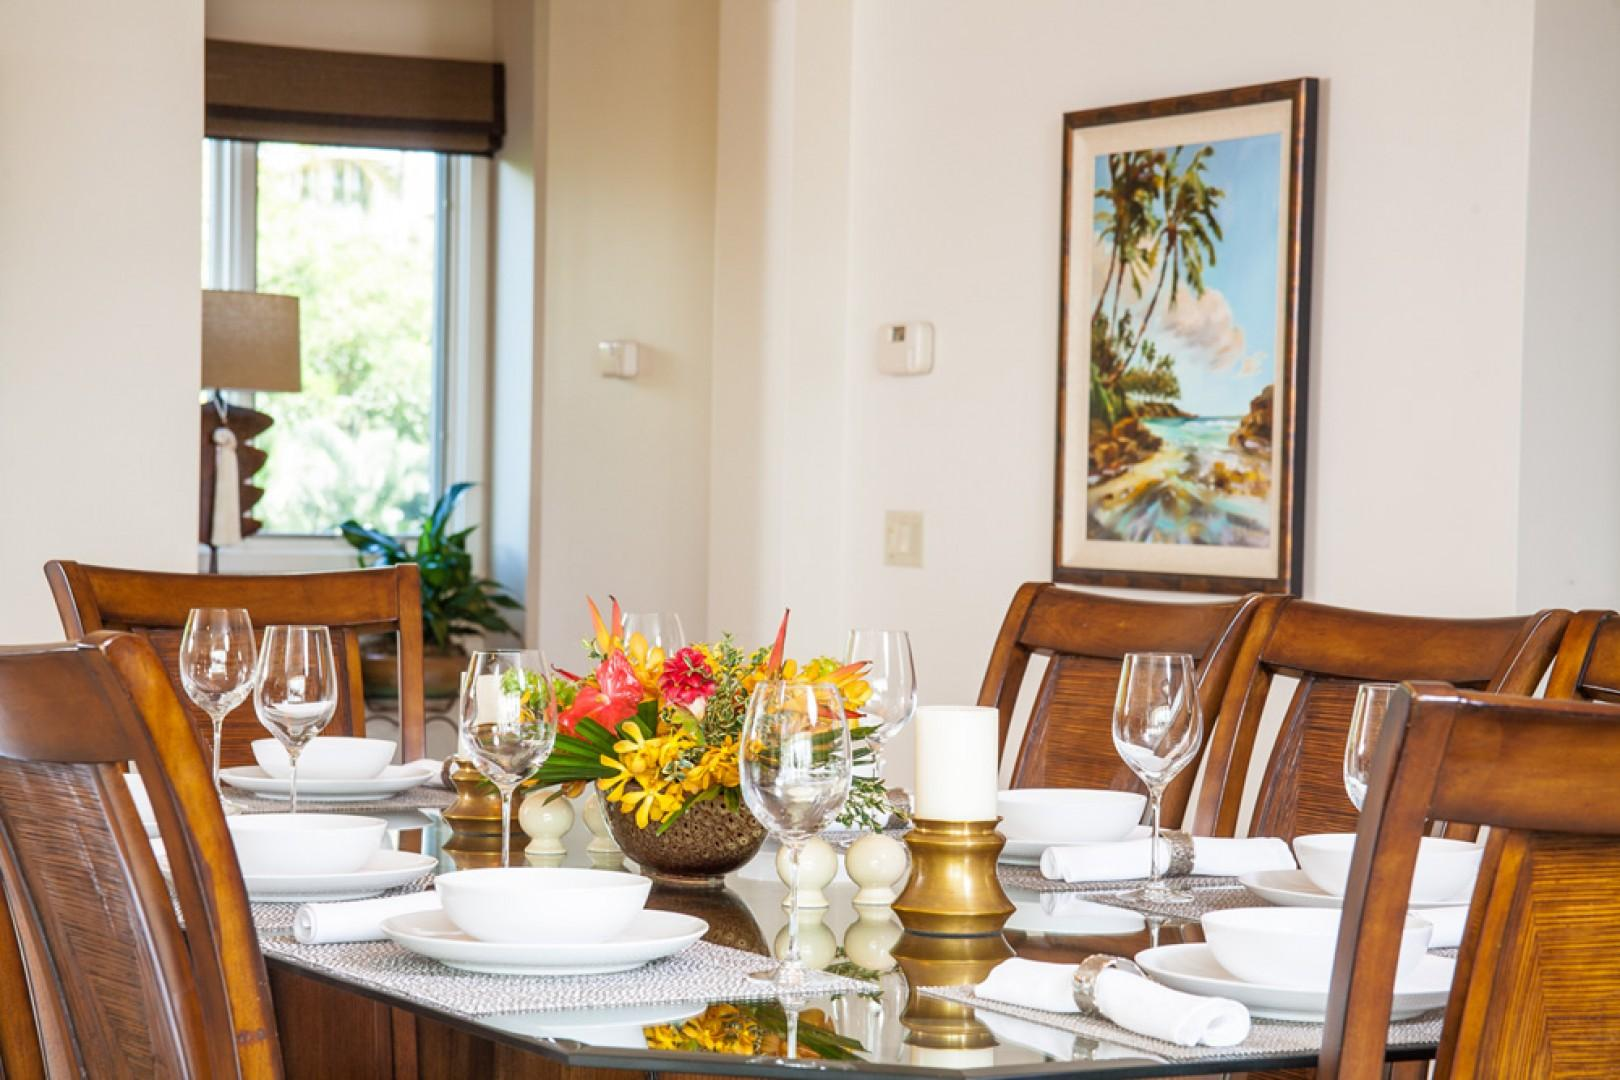 K308 Indoor Dining for Eight, Original and Giclee Art by Maui's Premiere Artists, Capiz Shell Accents, Elegant Upscale Tropical Living